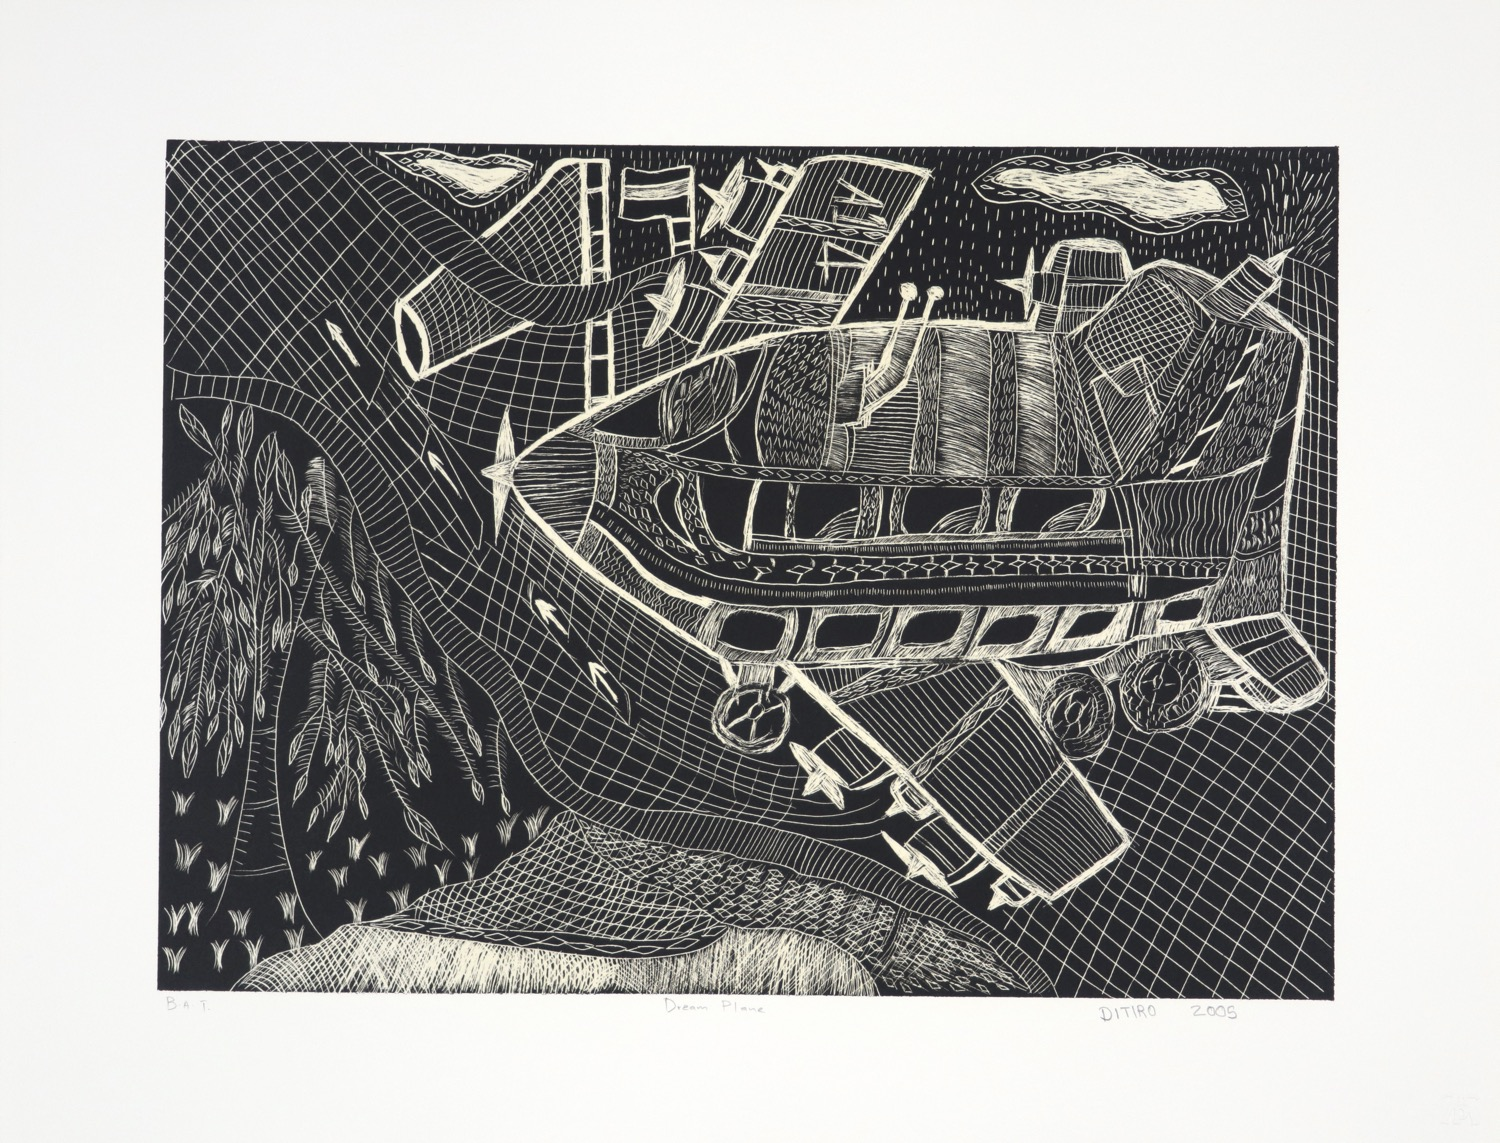 Scratch litho of a small imaginary aeroplane seen from above with landscape below.